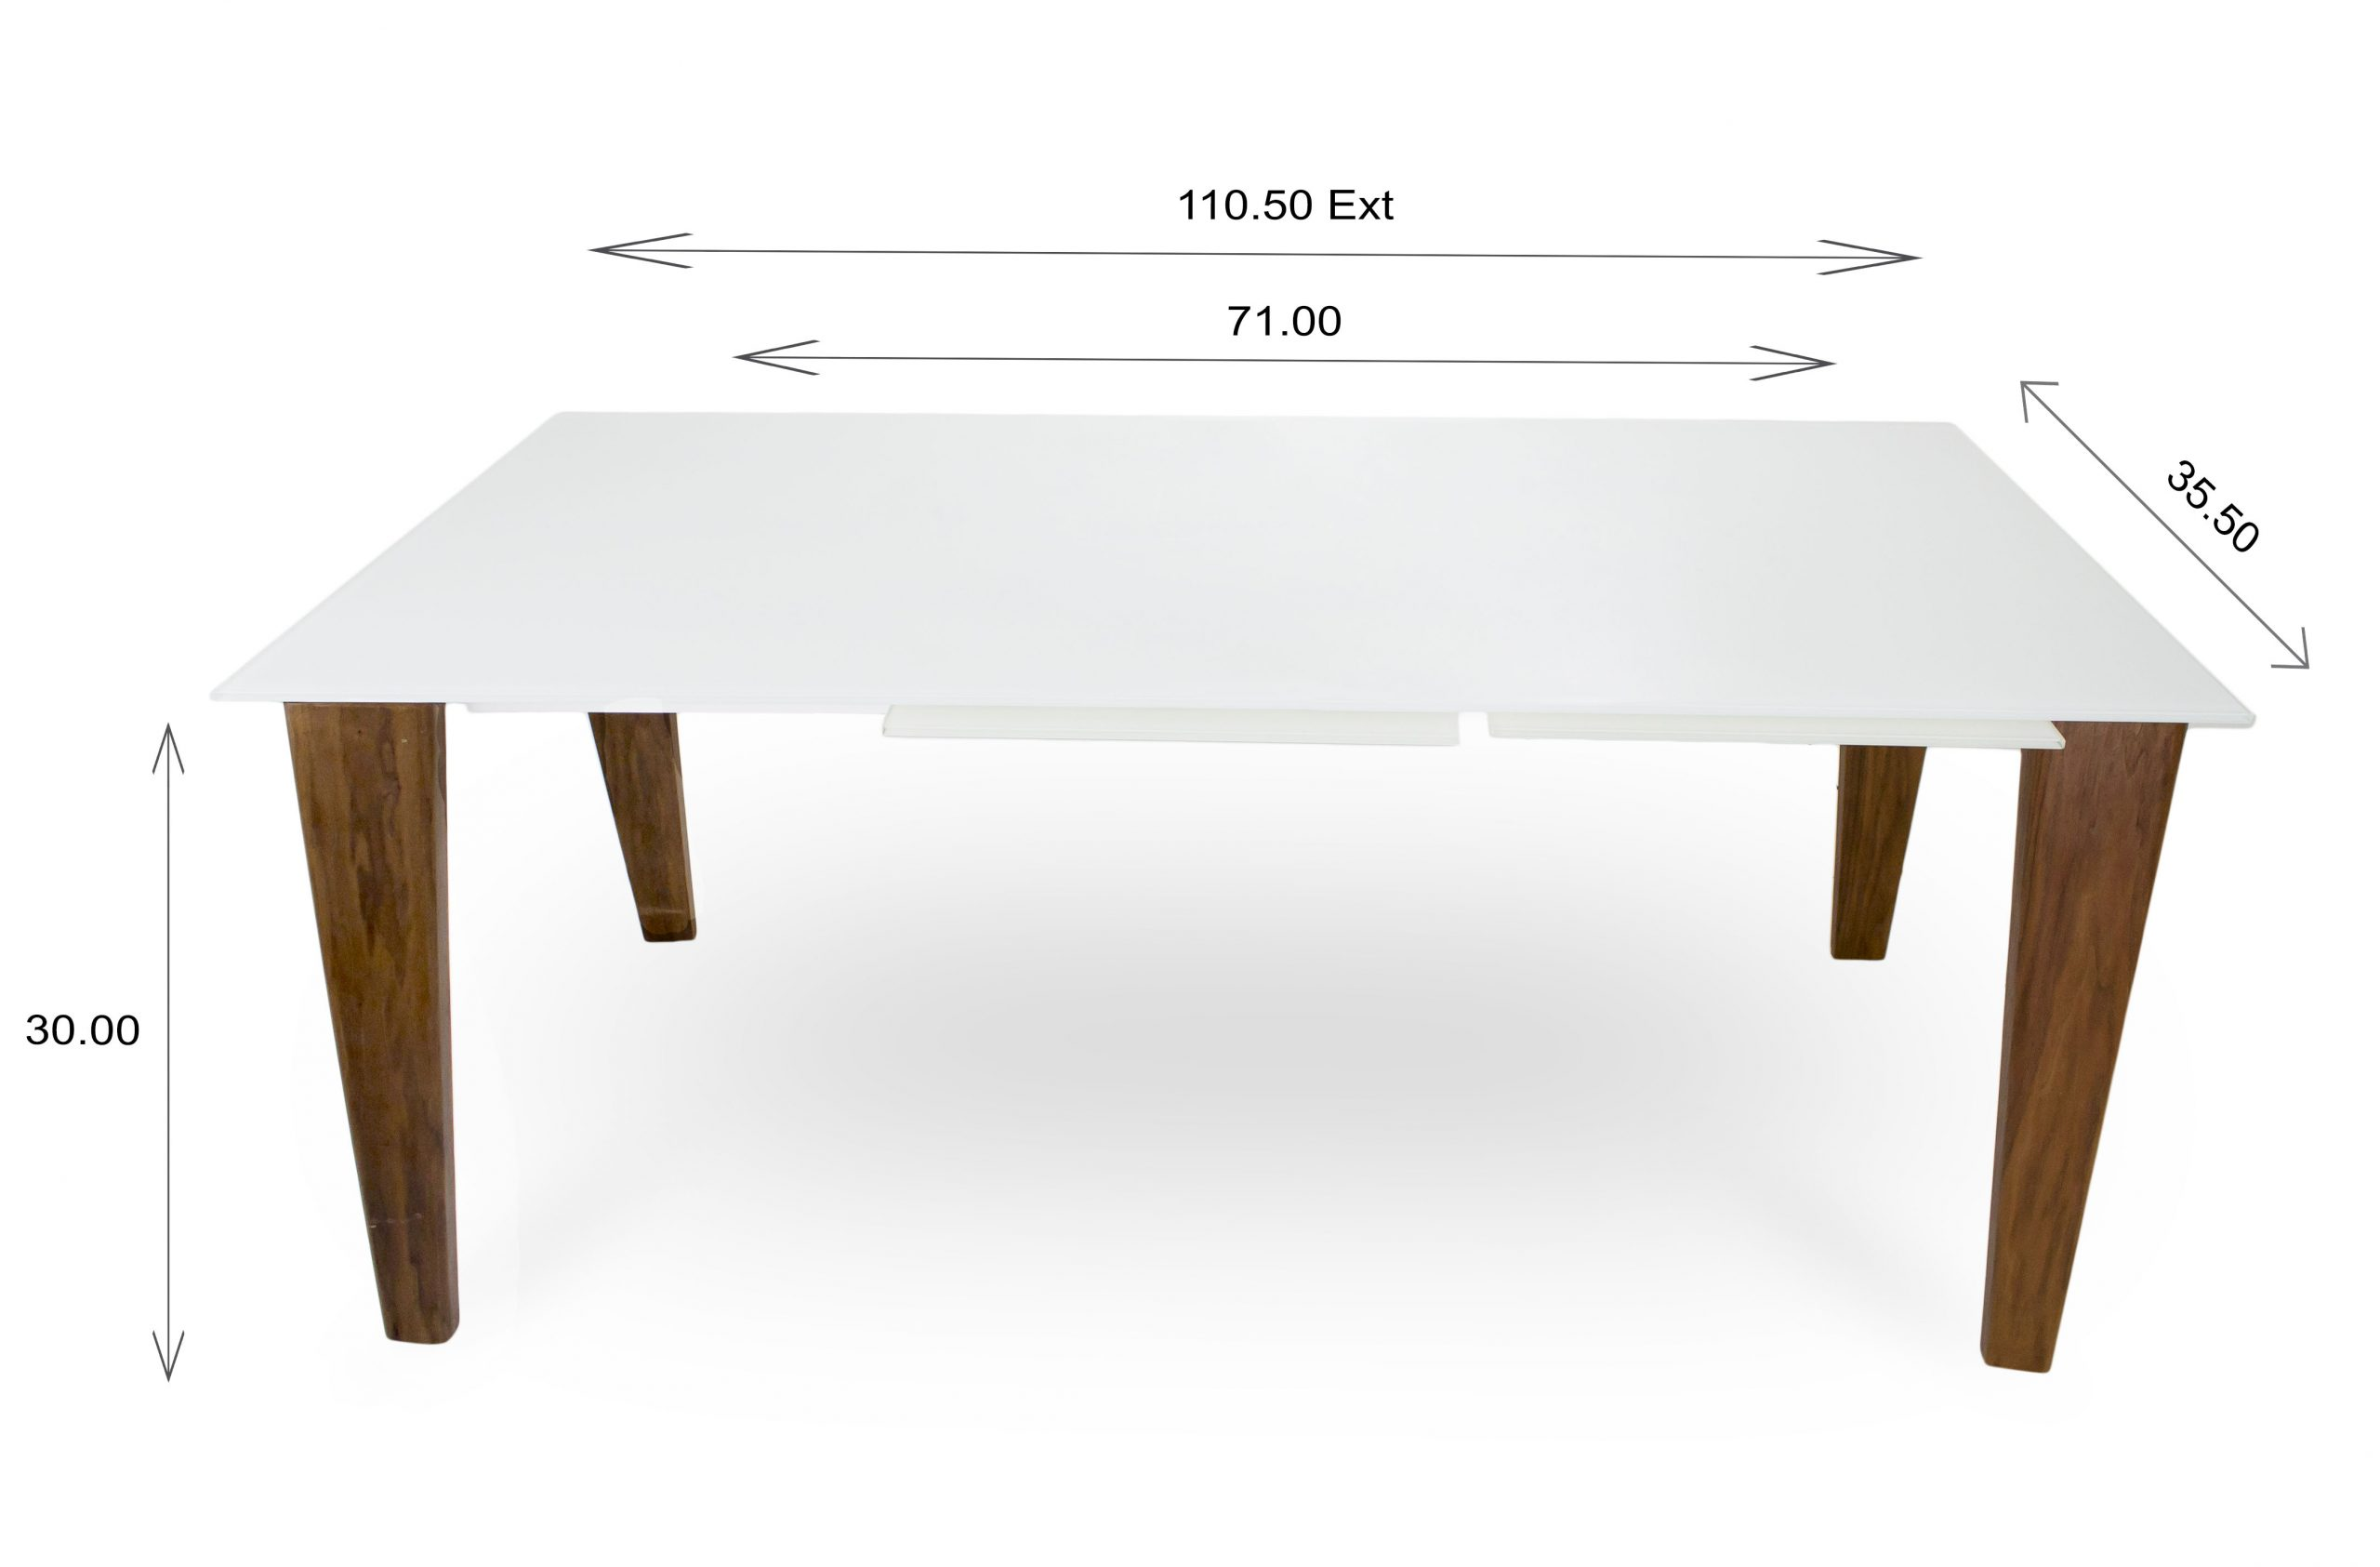 Dover Dining Table Dimensions